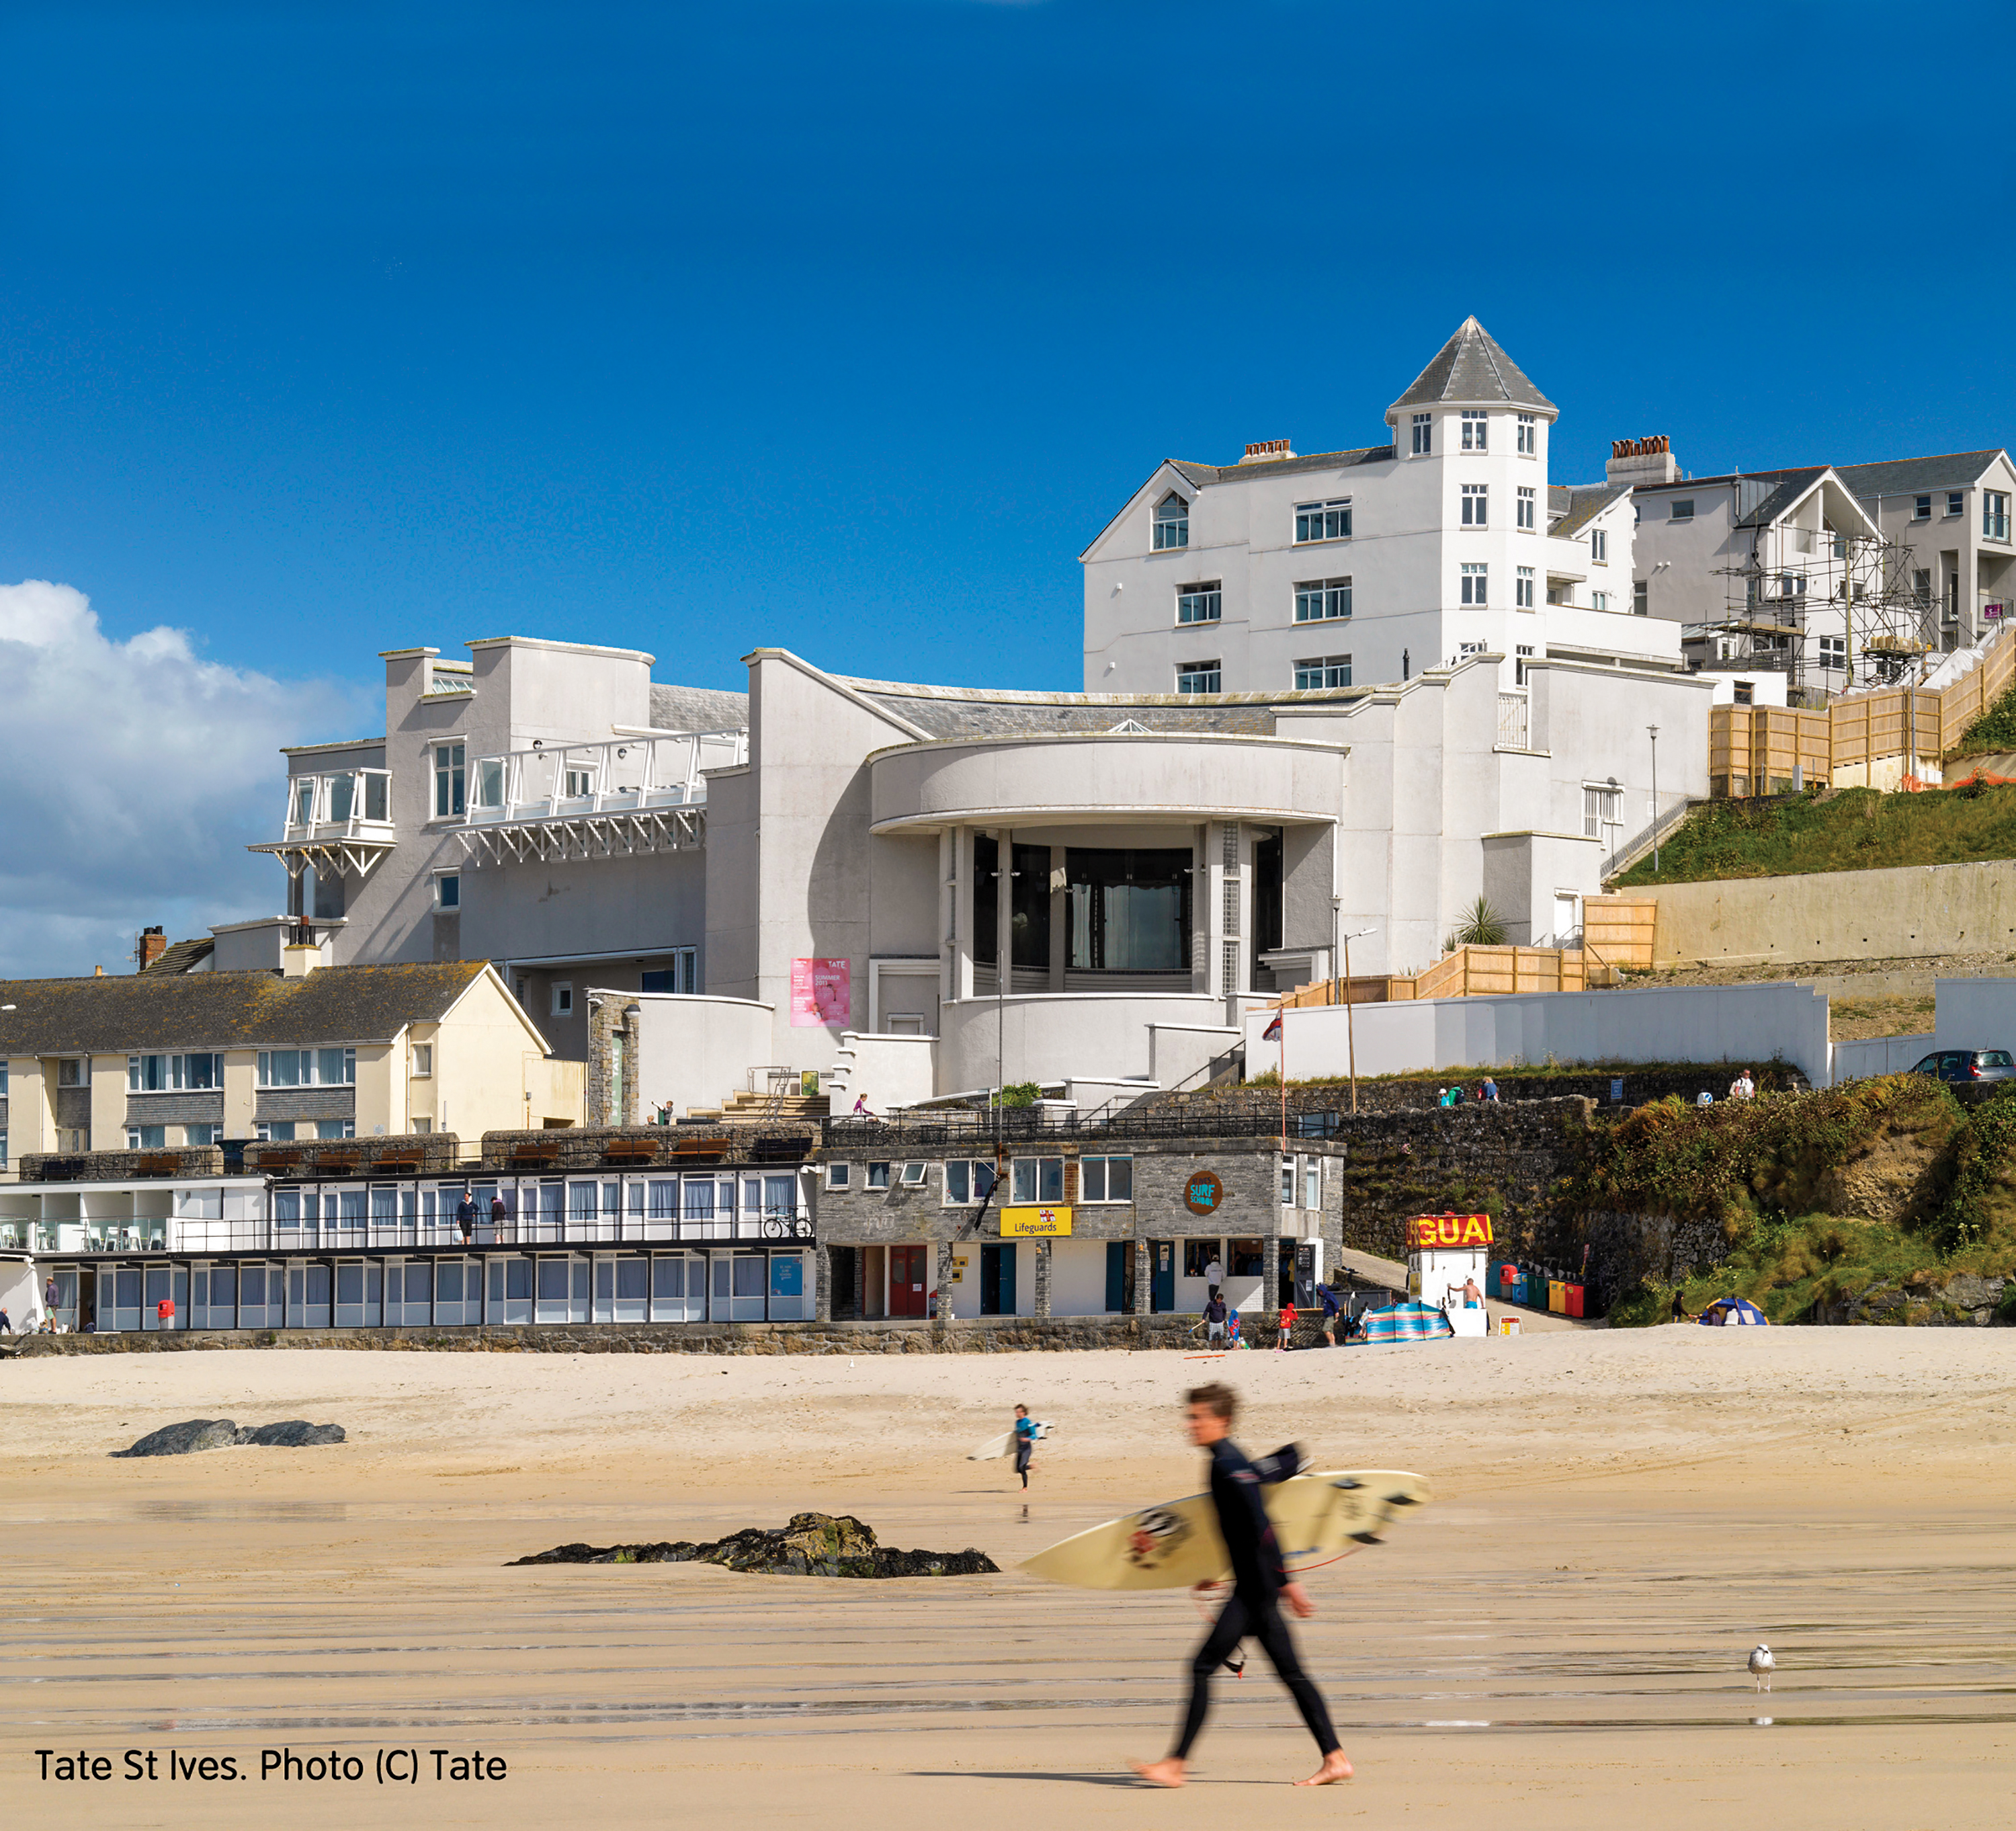 © Tate St Ives.